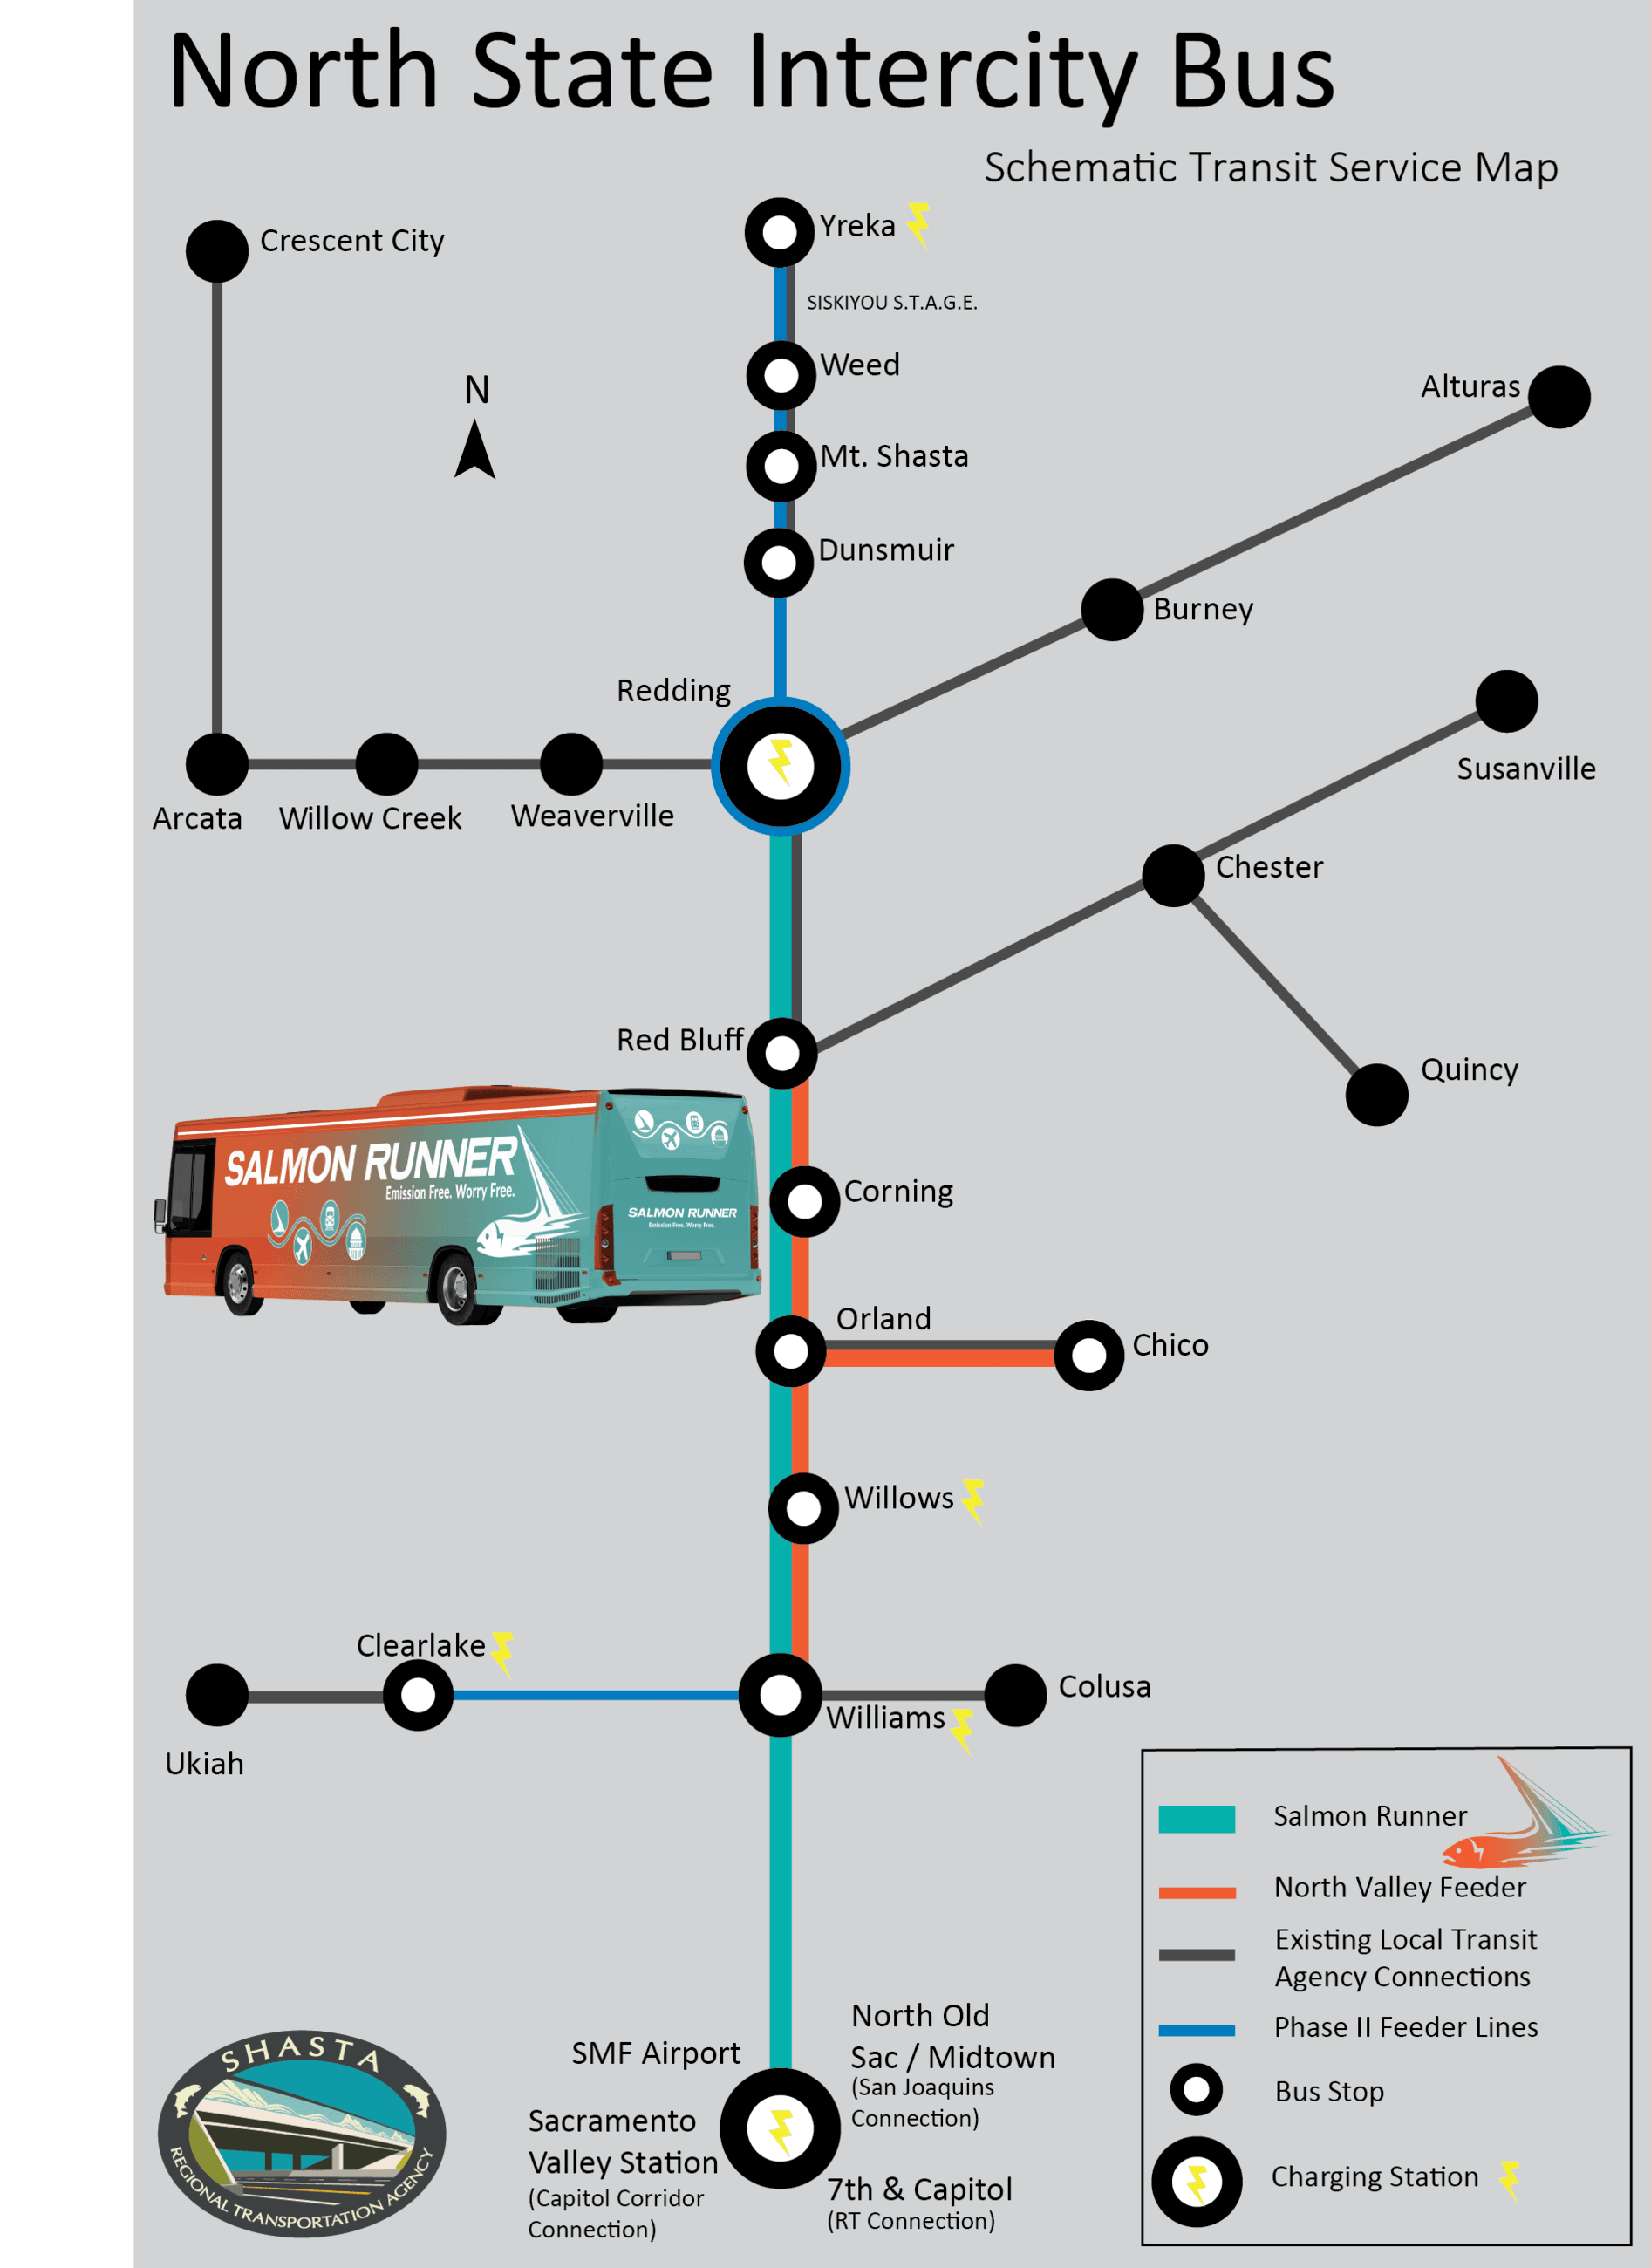 North State Intercity Bus System Schematic